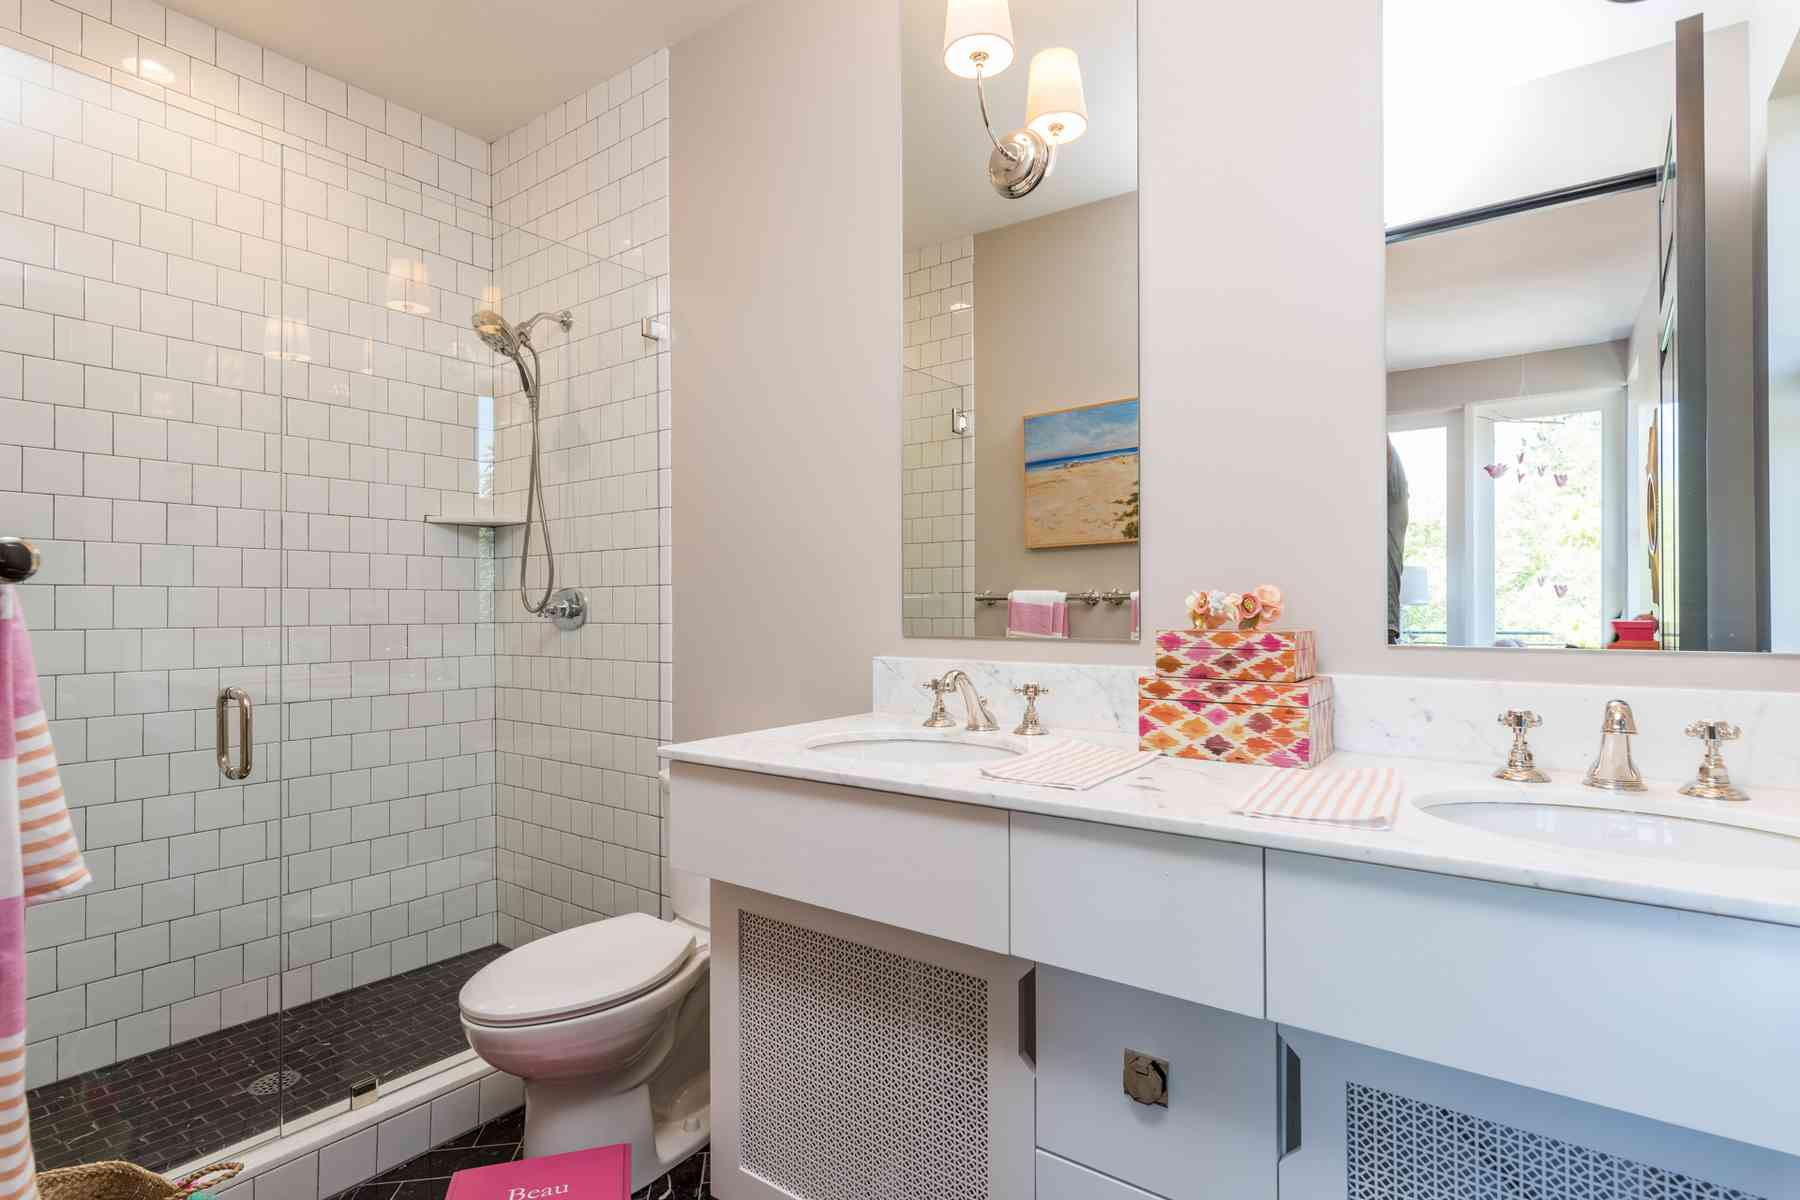 Additional photo for property listing at Big City Sophistication 171 East Ave N. Unit B 凯彻姆, 爱达荷州 83340 美国